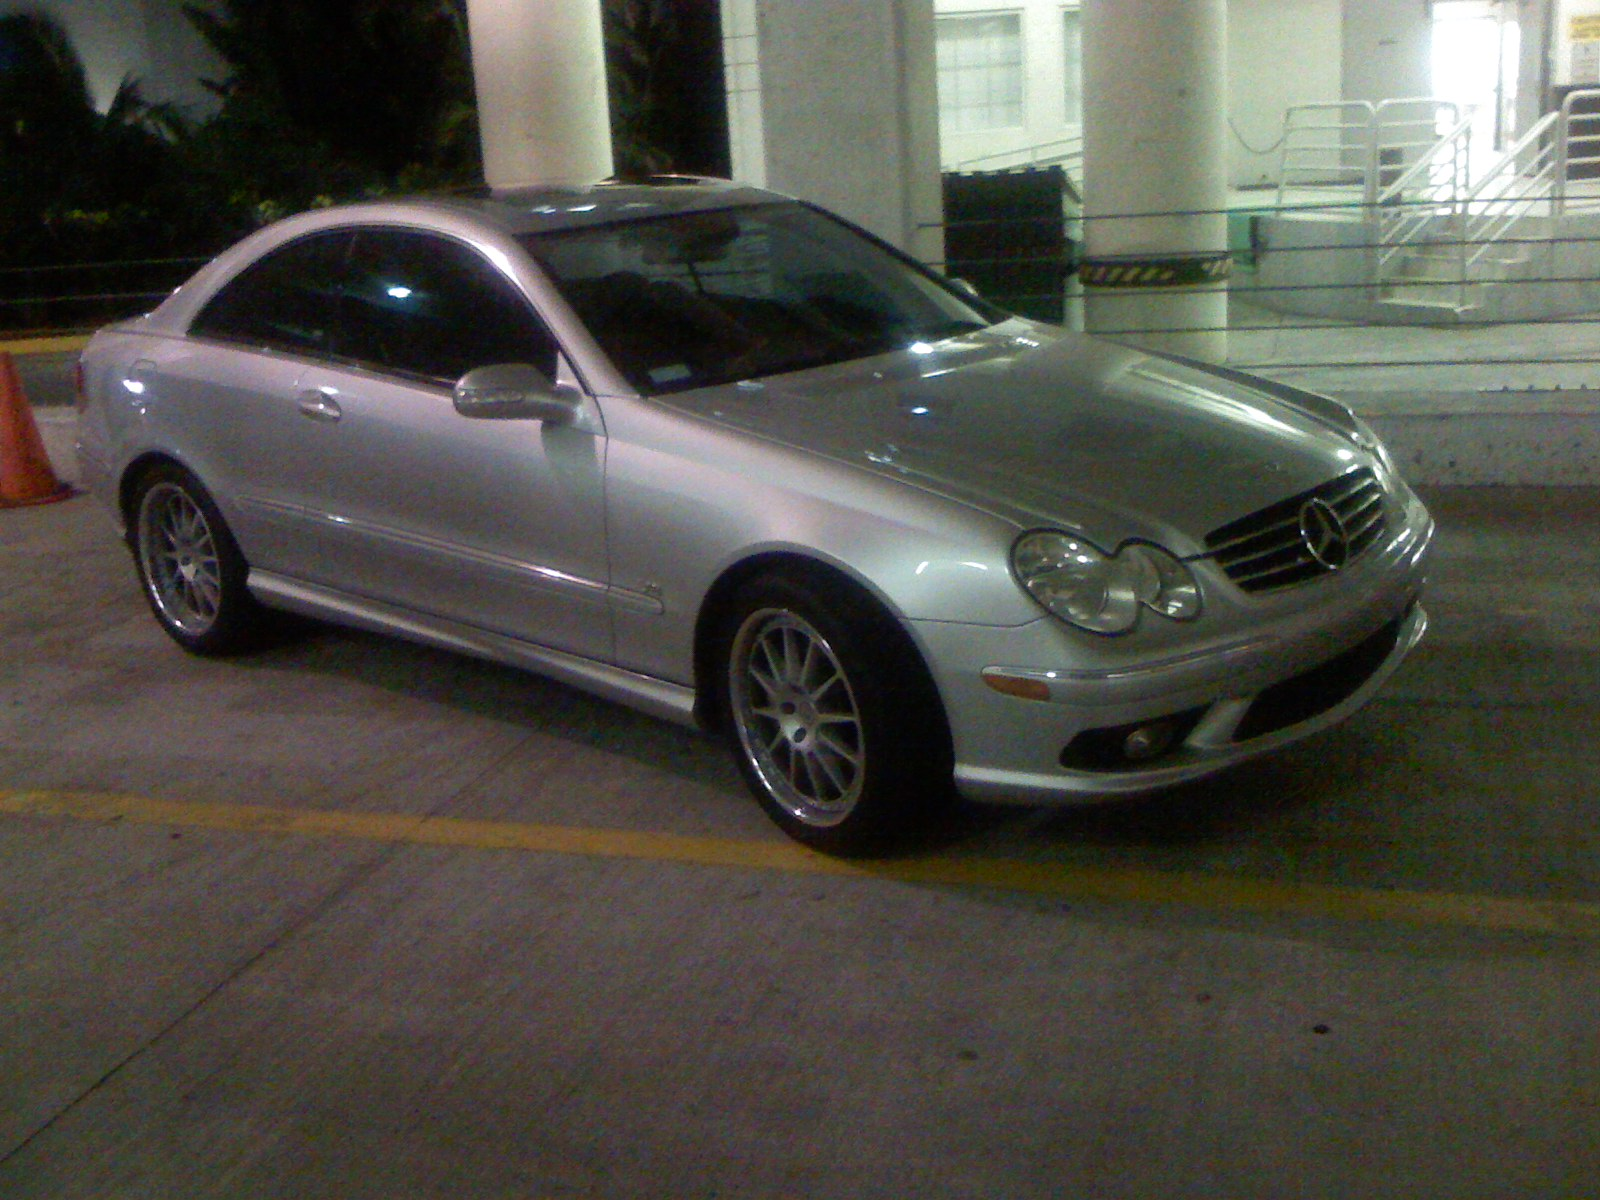 2003 Mercedes-Benz CLK500 abracing